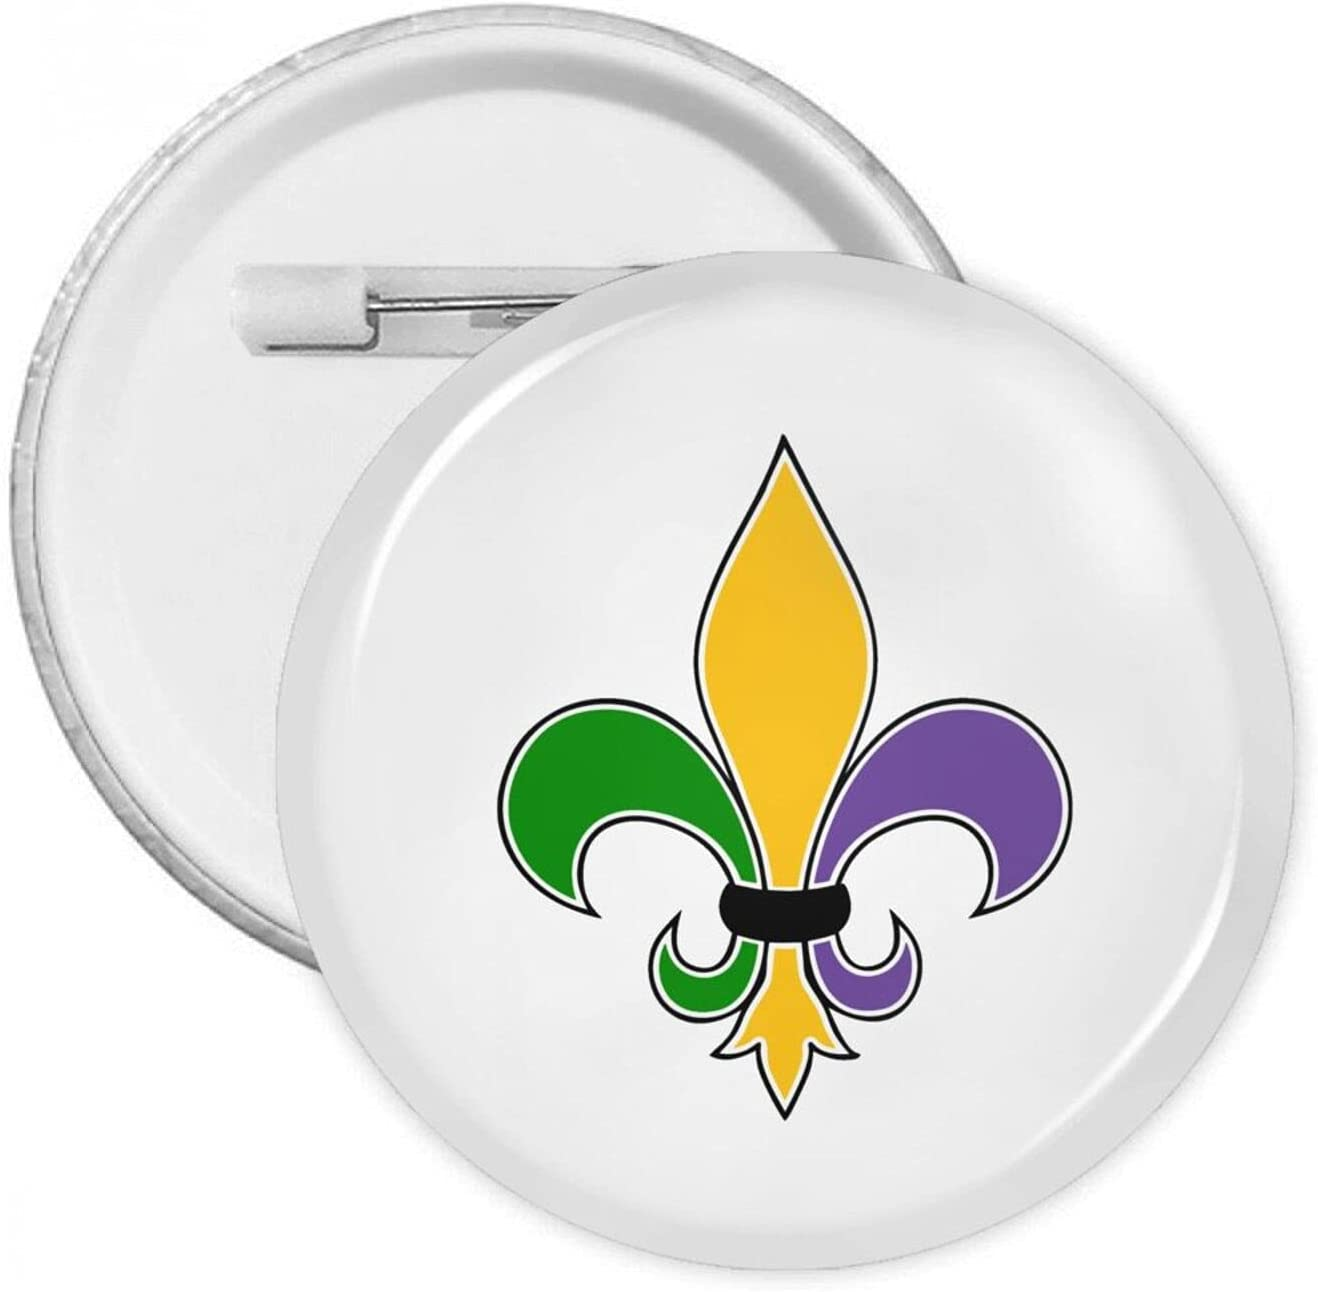 Fleur De Lis Mardi Gras Round Badge Novelty Round Brooches Fashion Round Brooch for Hats Bags Backpacks Clothes Decoration Accessories